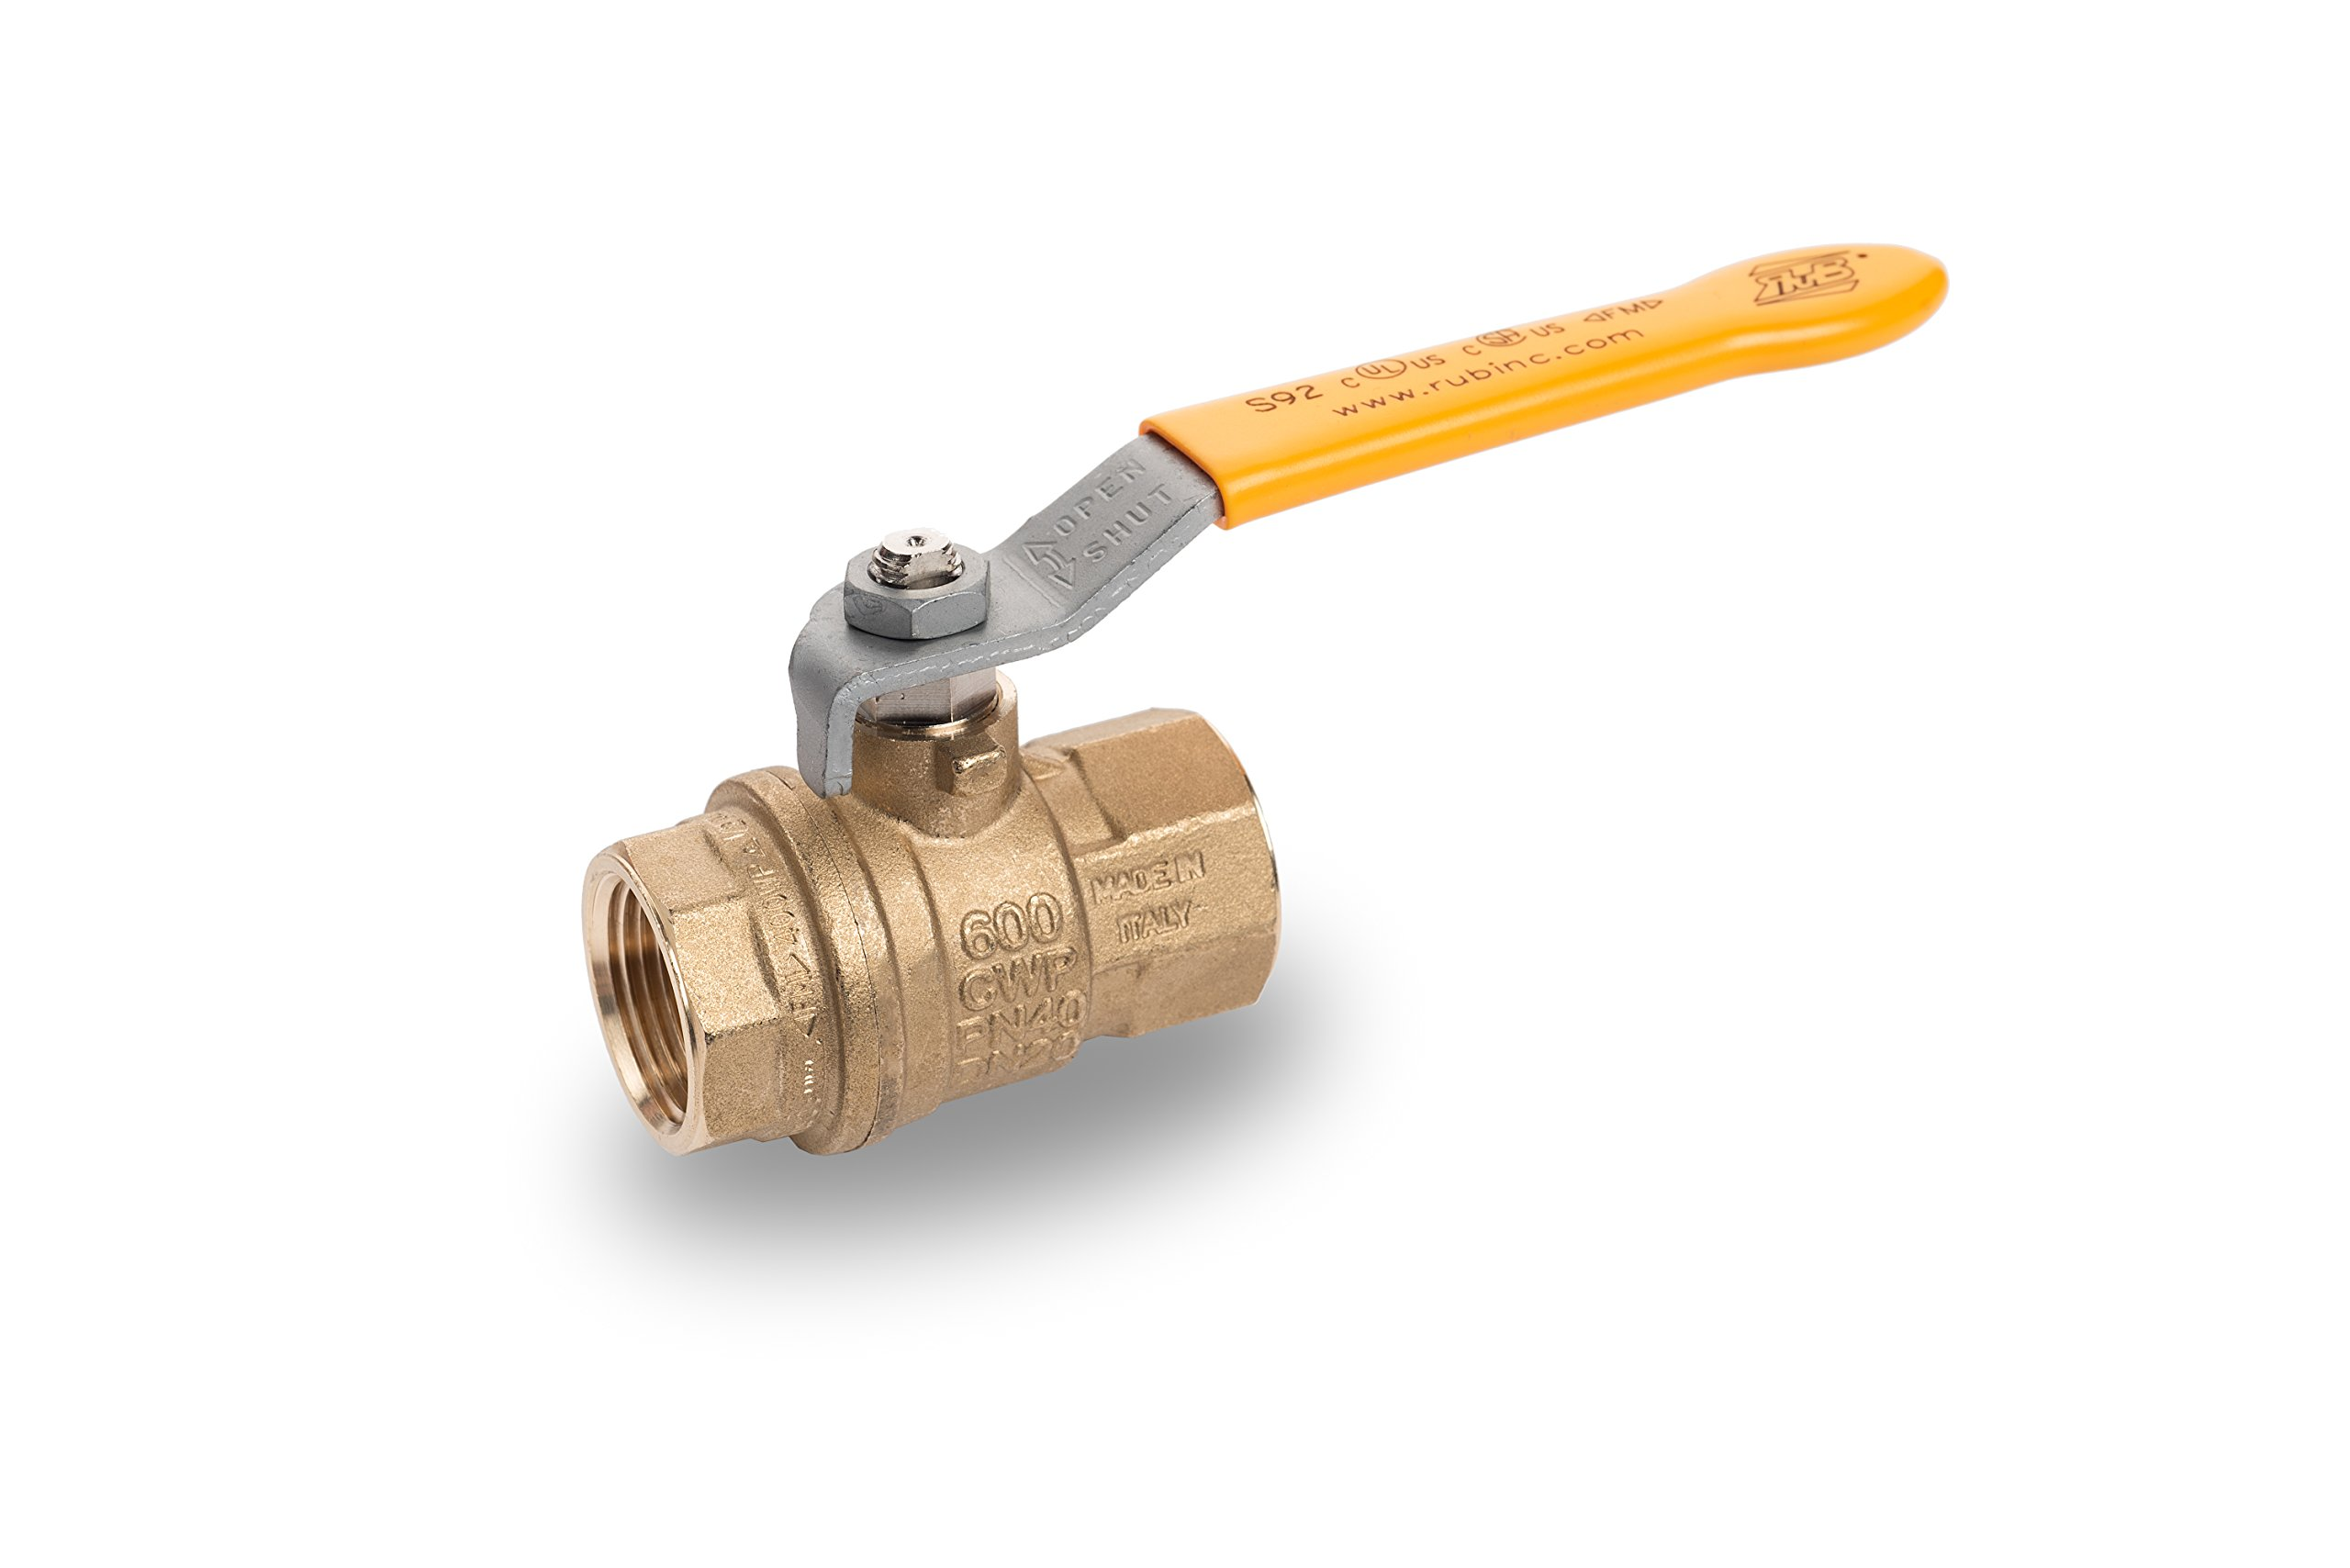 RUB S92E41 S92 3/4'' FxF Lever Handle Ball Valve Water Steam Gas Industrial Use Hot Forged Brass Full Port, 25, 000 Cycle, 0.75'' (Pack of 12)